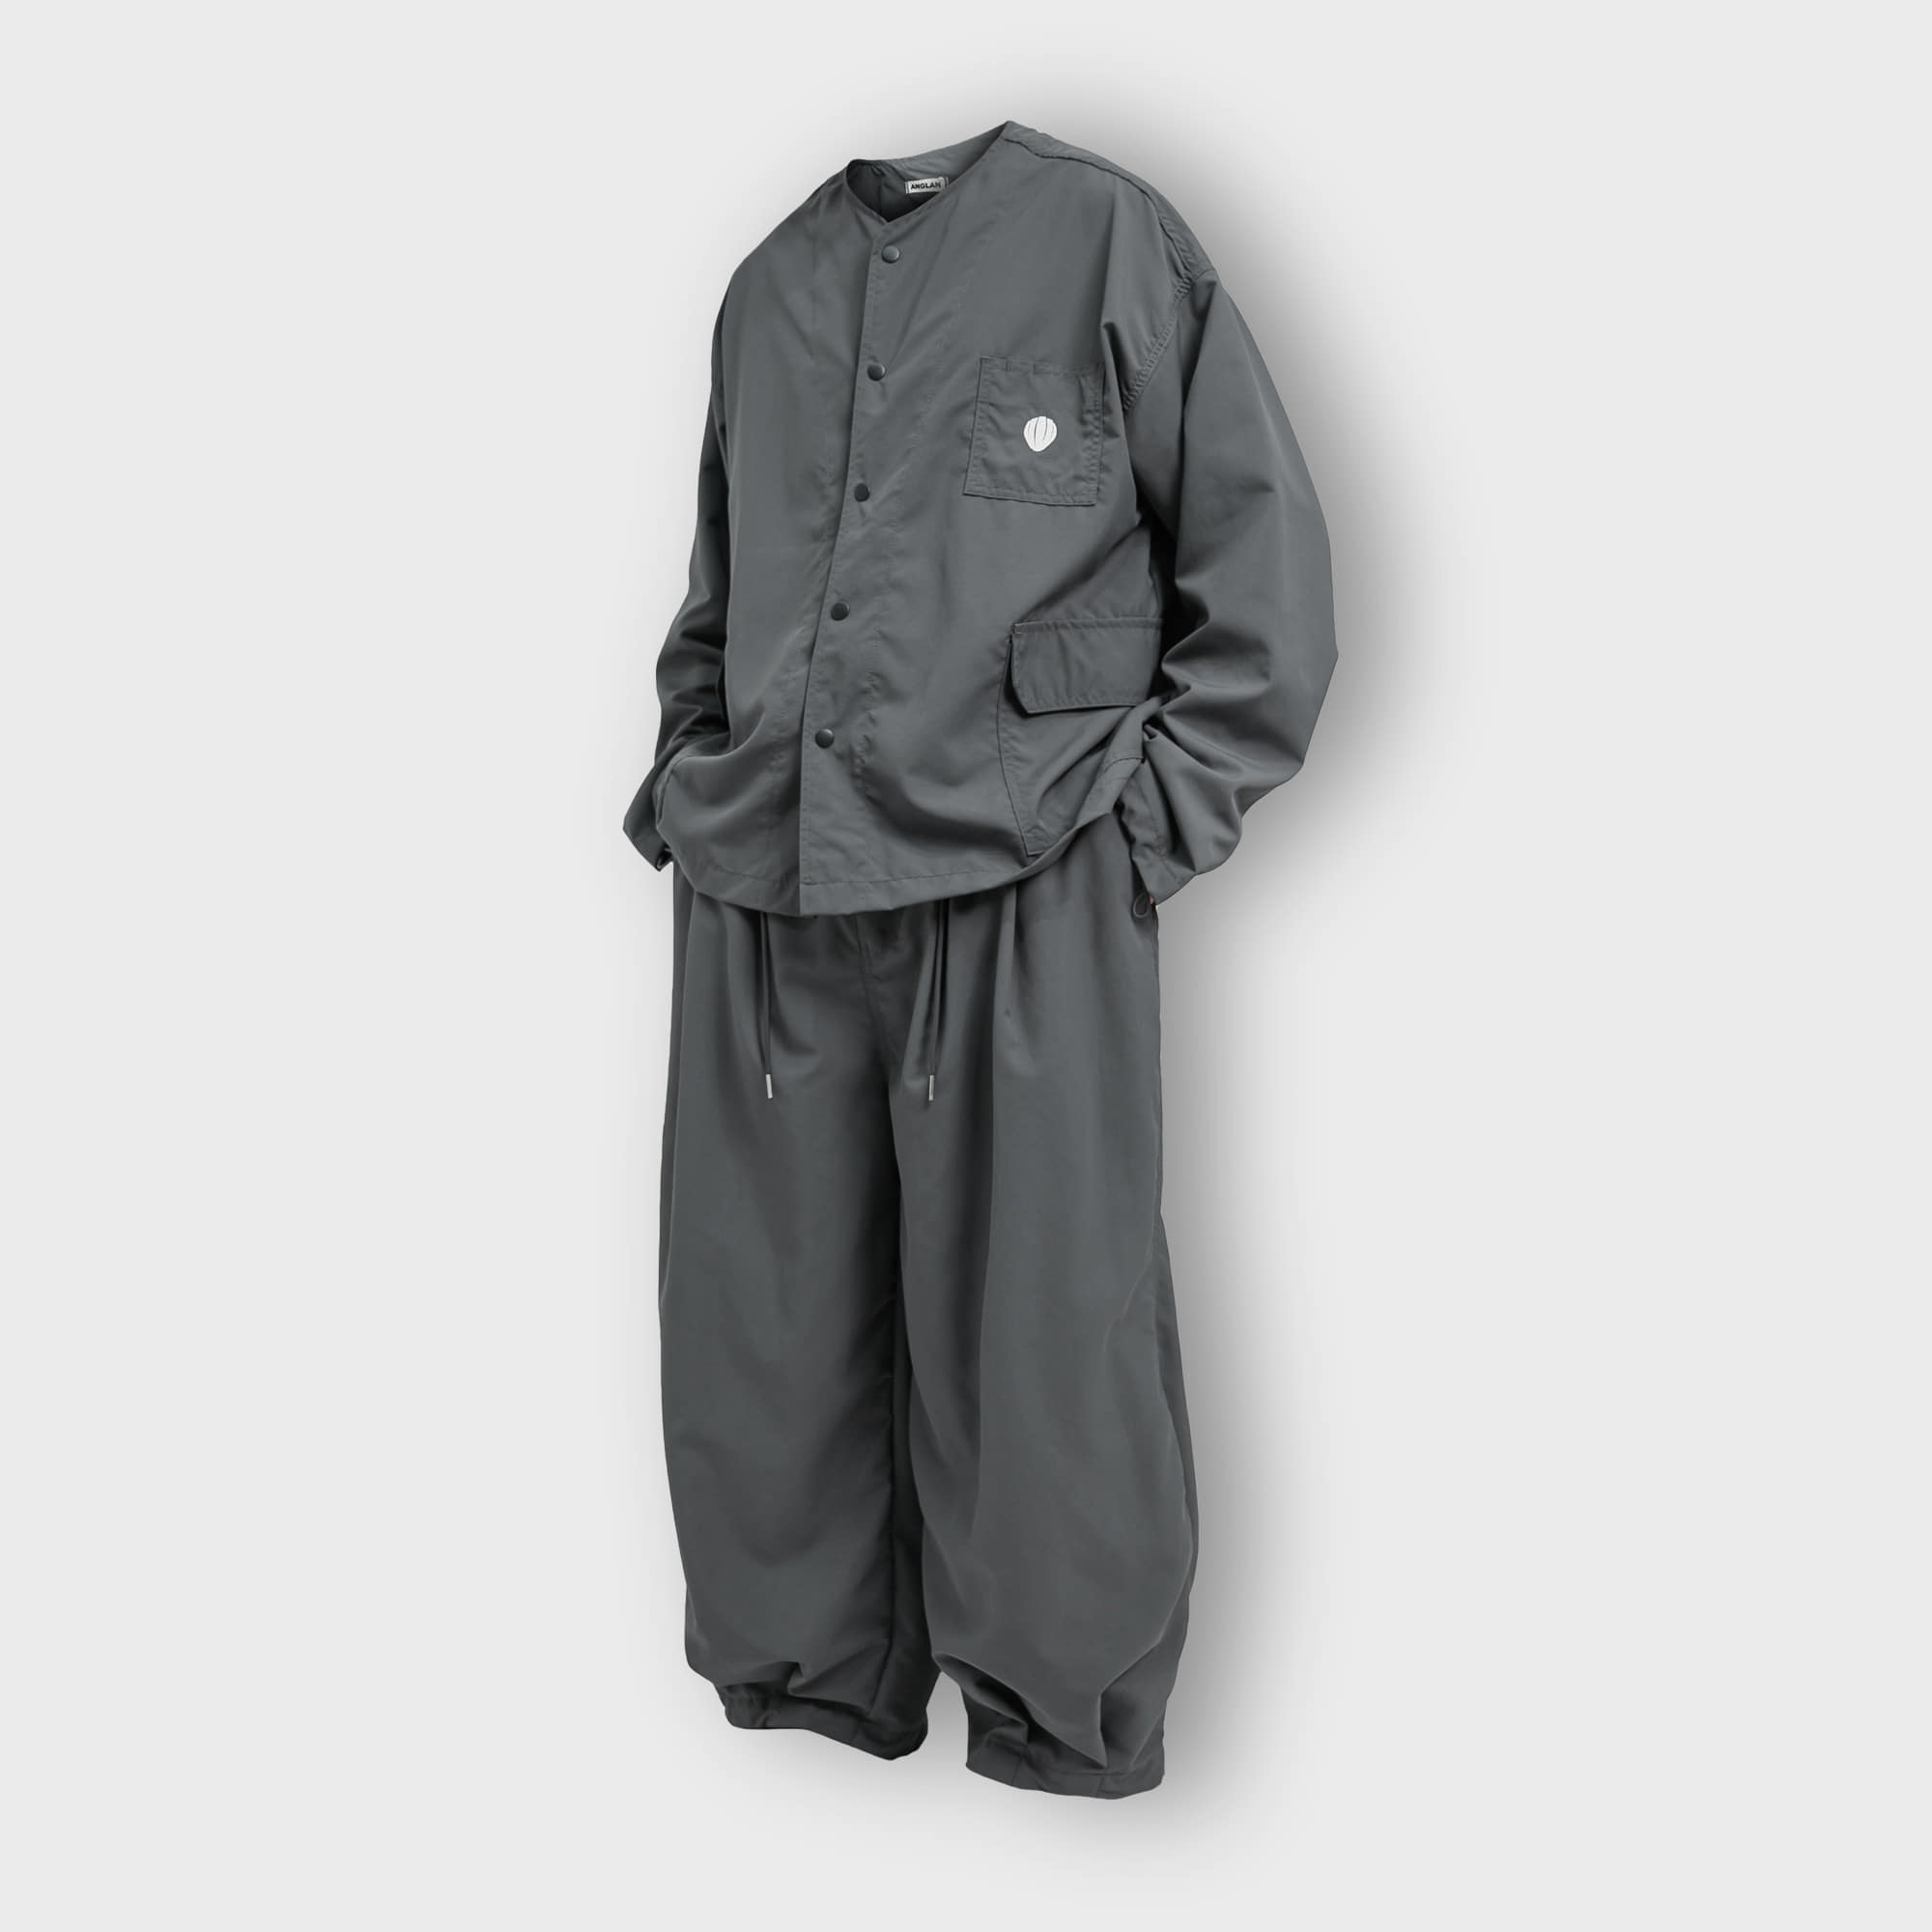 [AG] Rib Nylon Public Set up - Grey